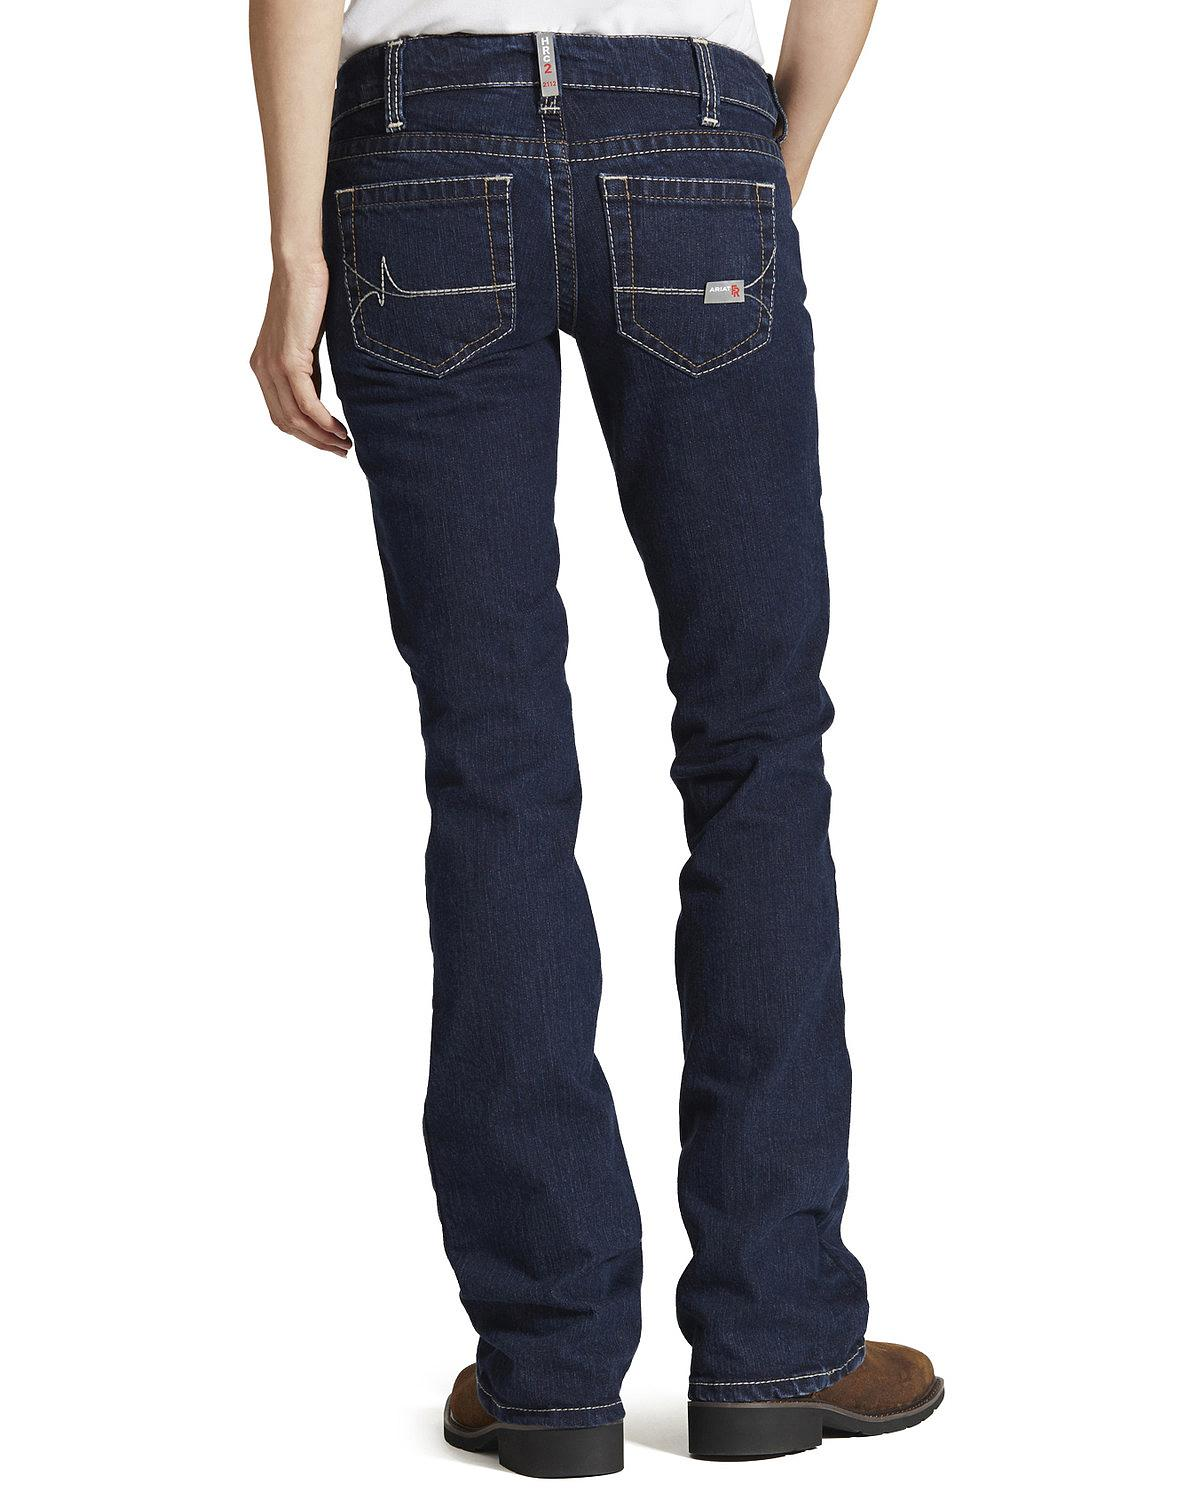 Ariat Women's Fire-Resistant Bootcut Work Jeans - 10016177 | eBay